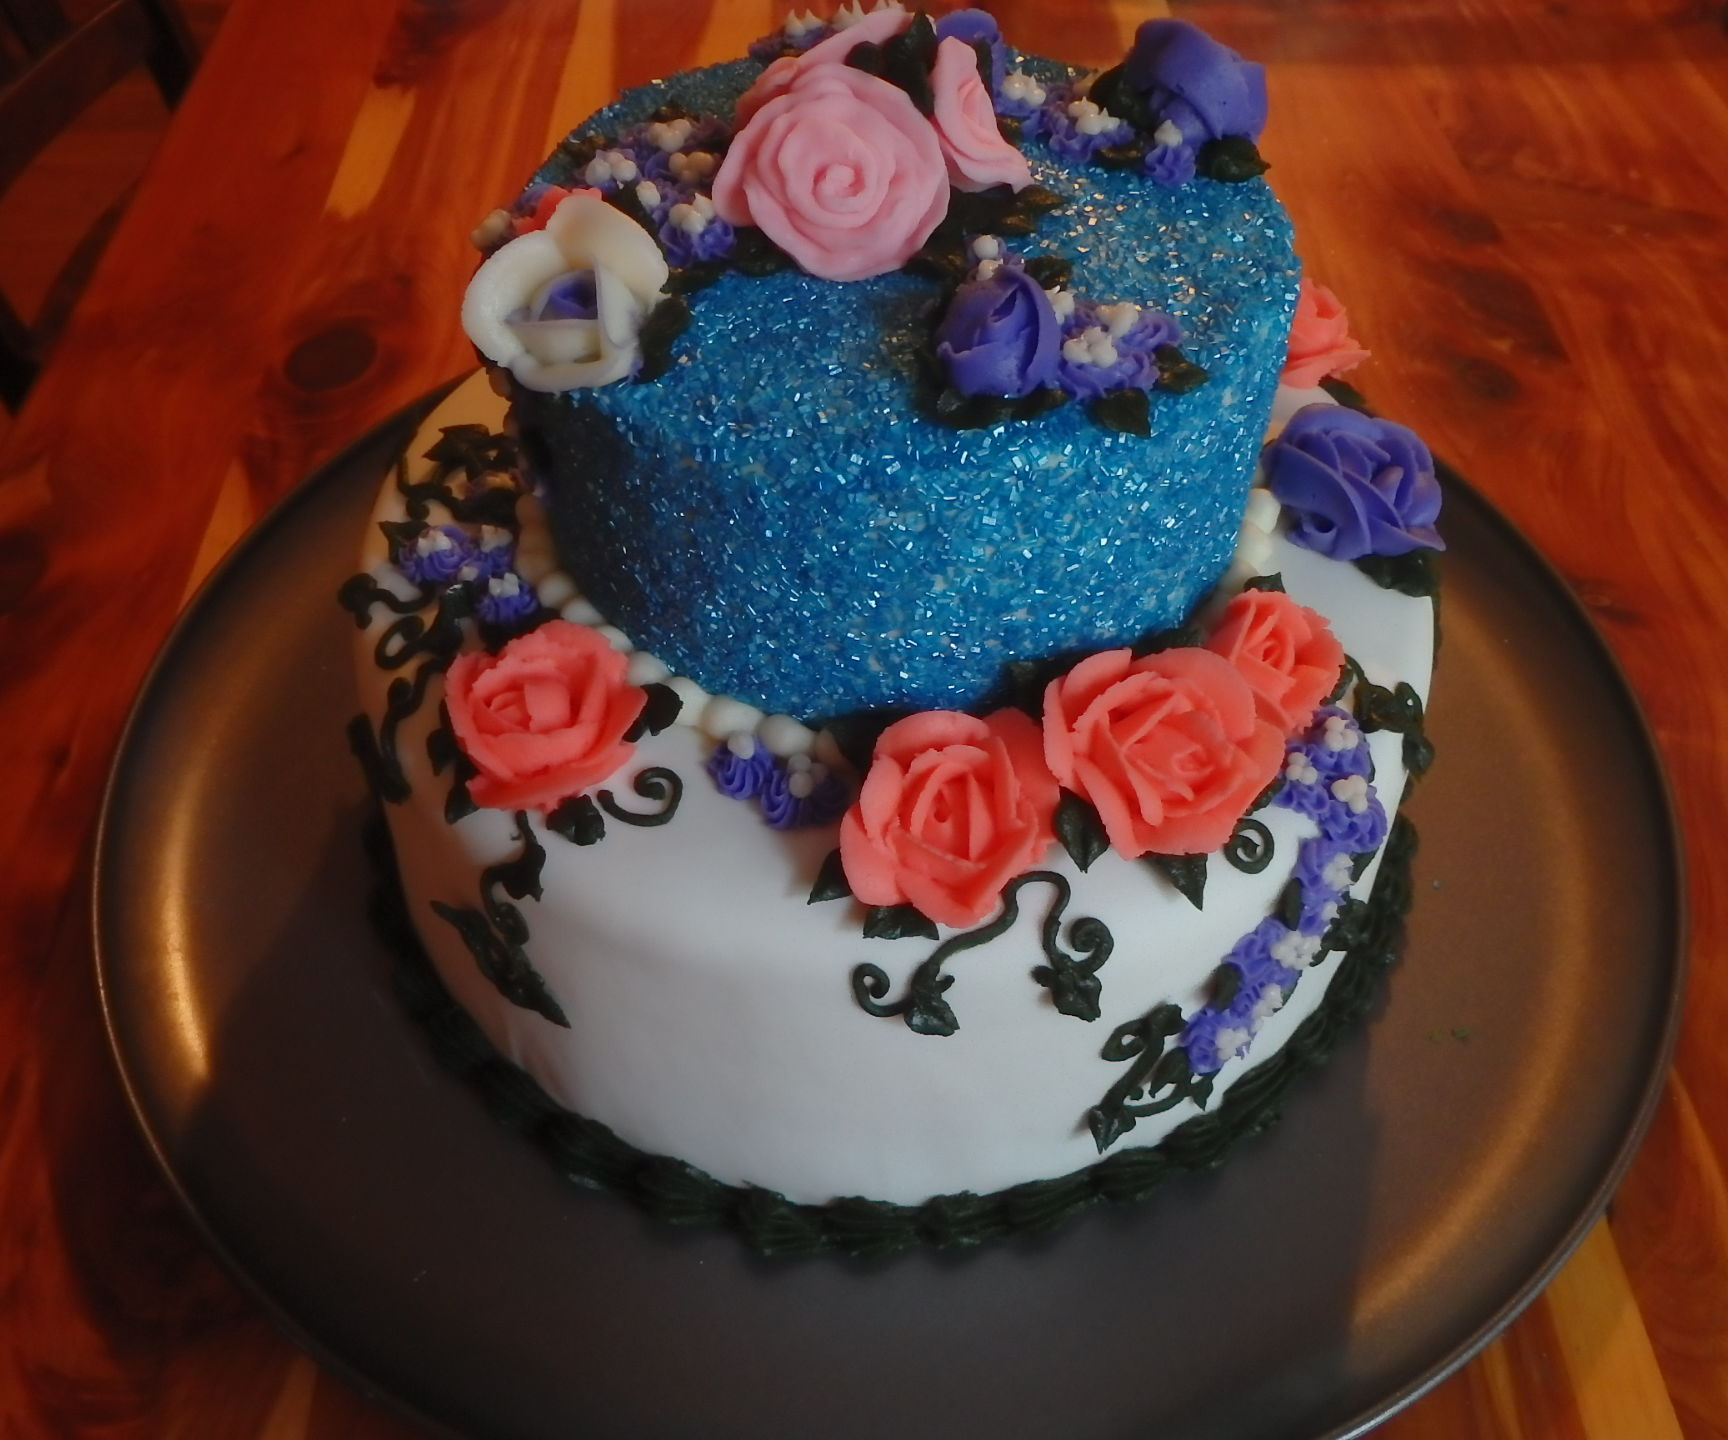 How to make and decorate a sparkling rose cake.